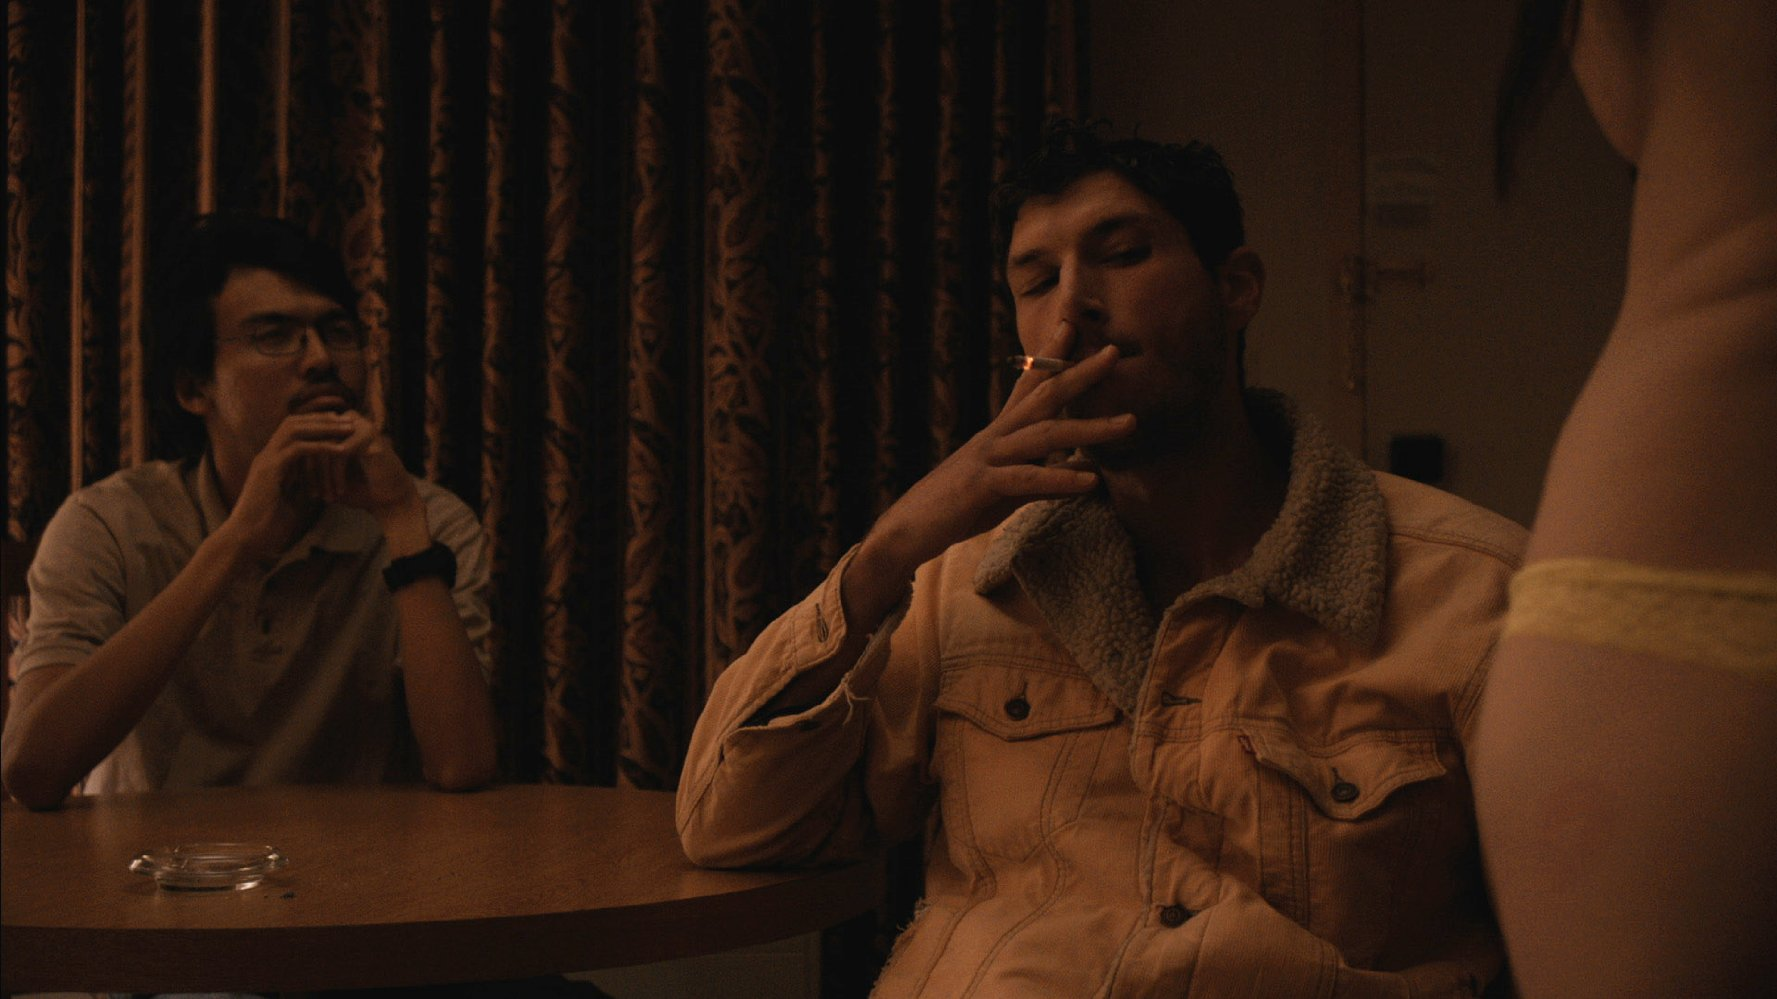 SXSW: 'California Dreams' is one of the cruelest films of recent memory